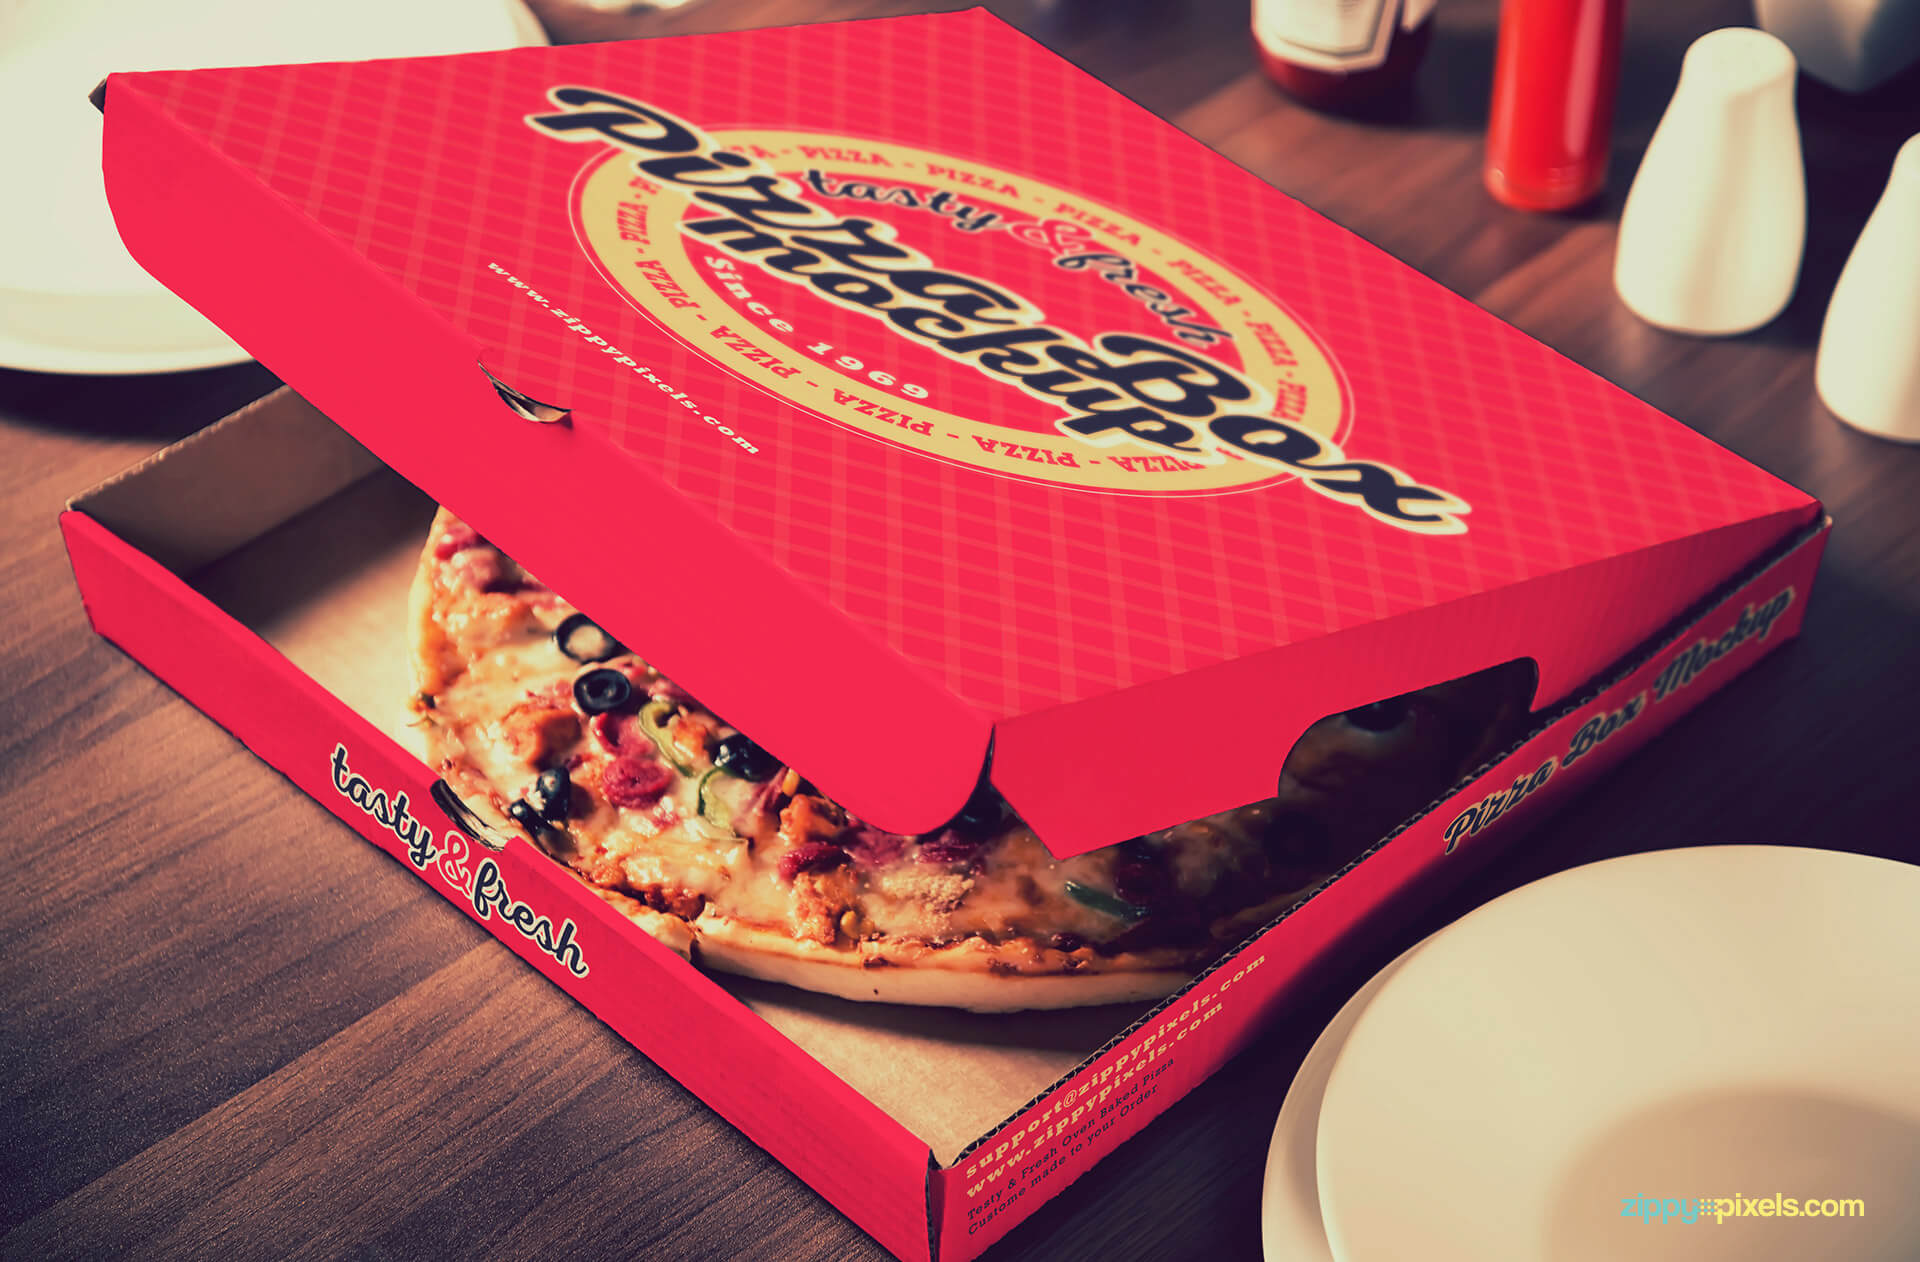 Pizza cardboard box mockup.